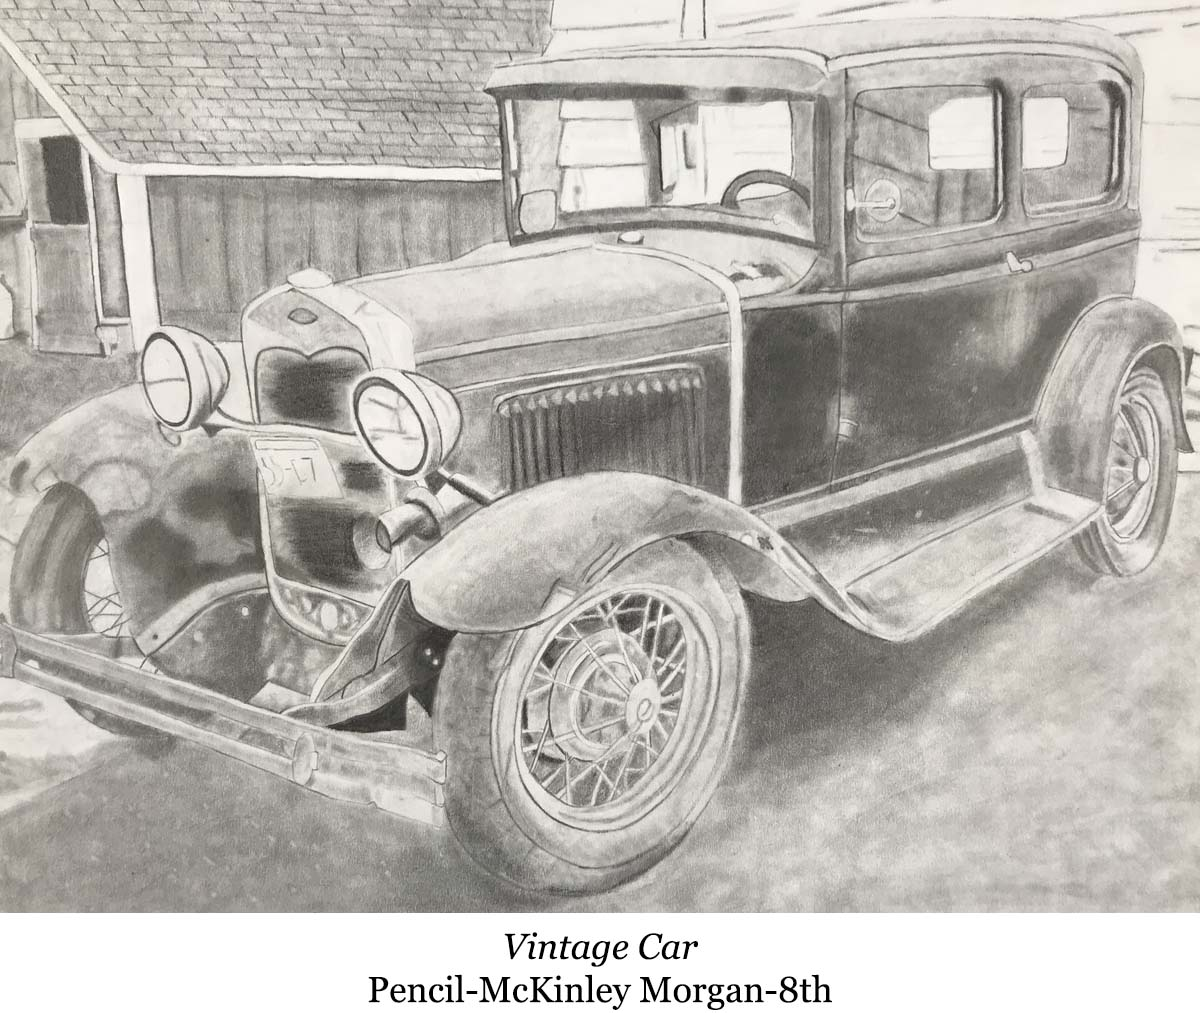 1588002932-vintage_car-pencil-mckinley_morgan-8th